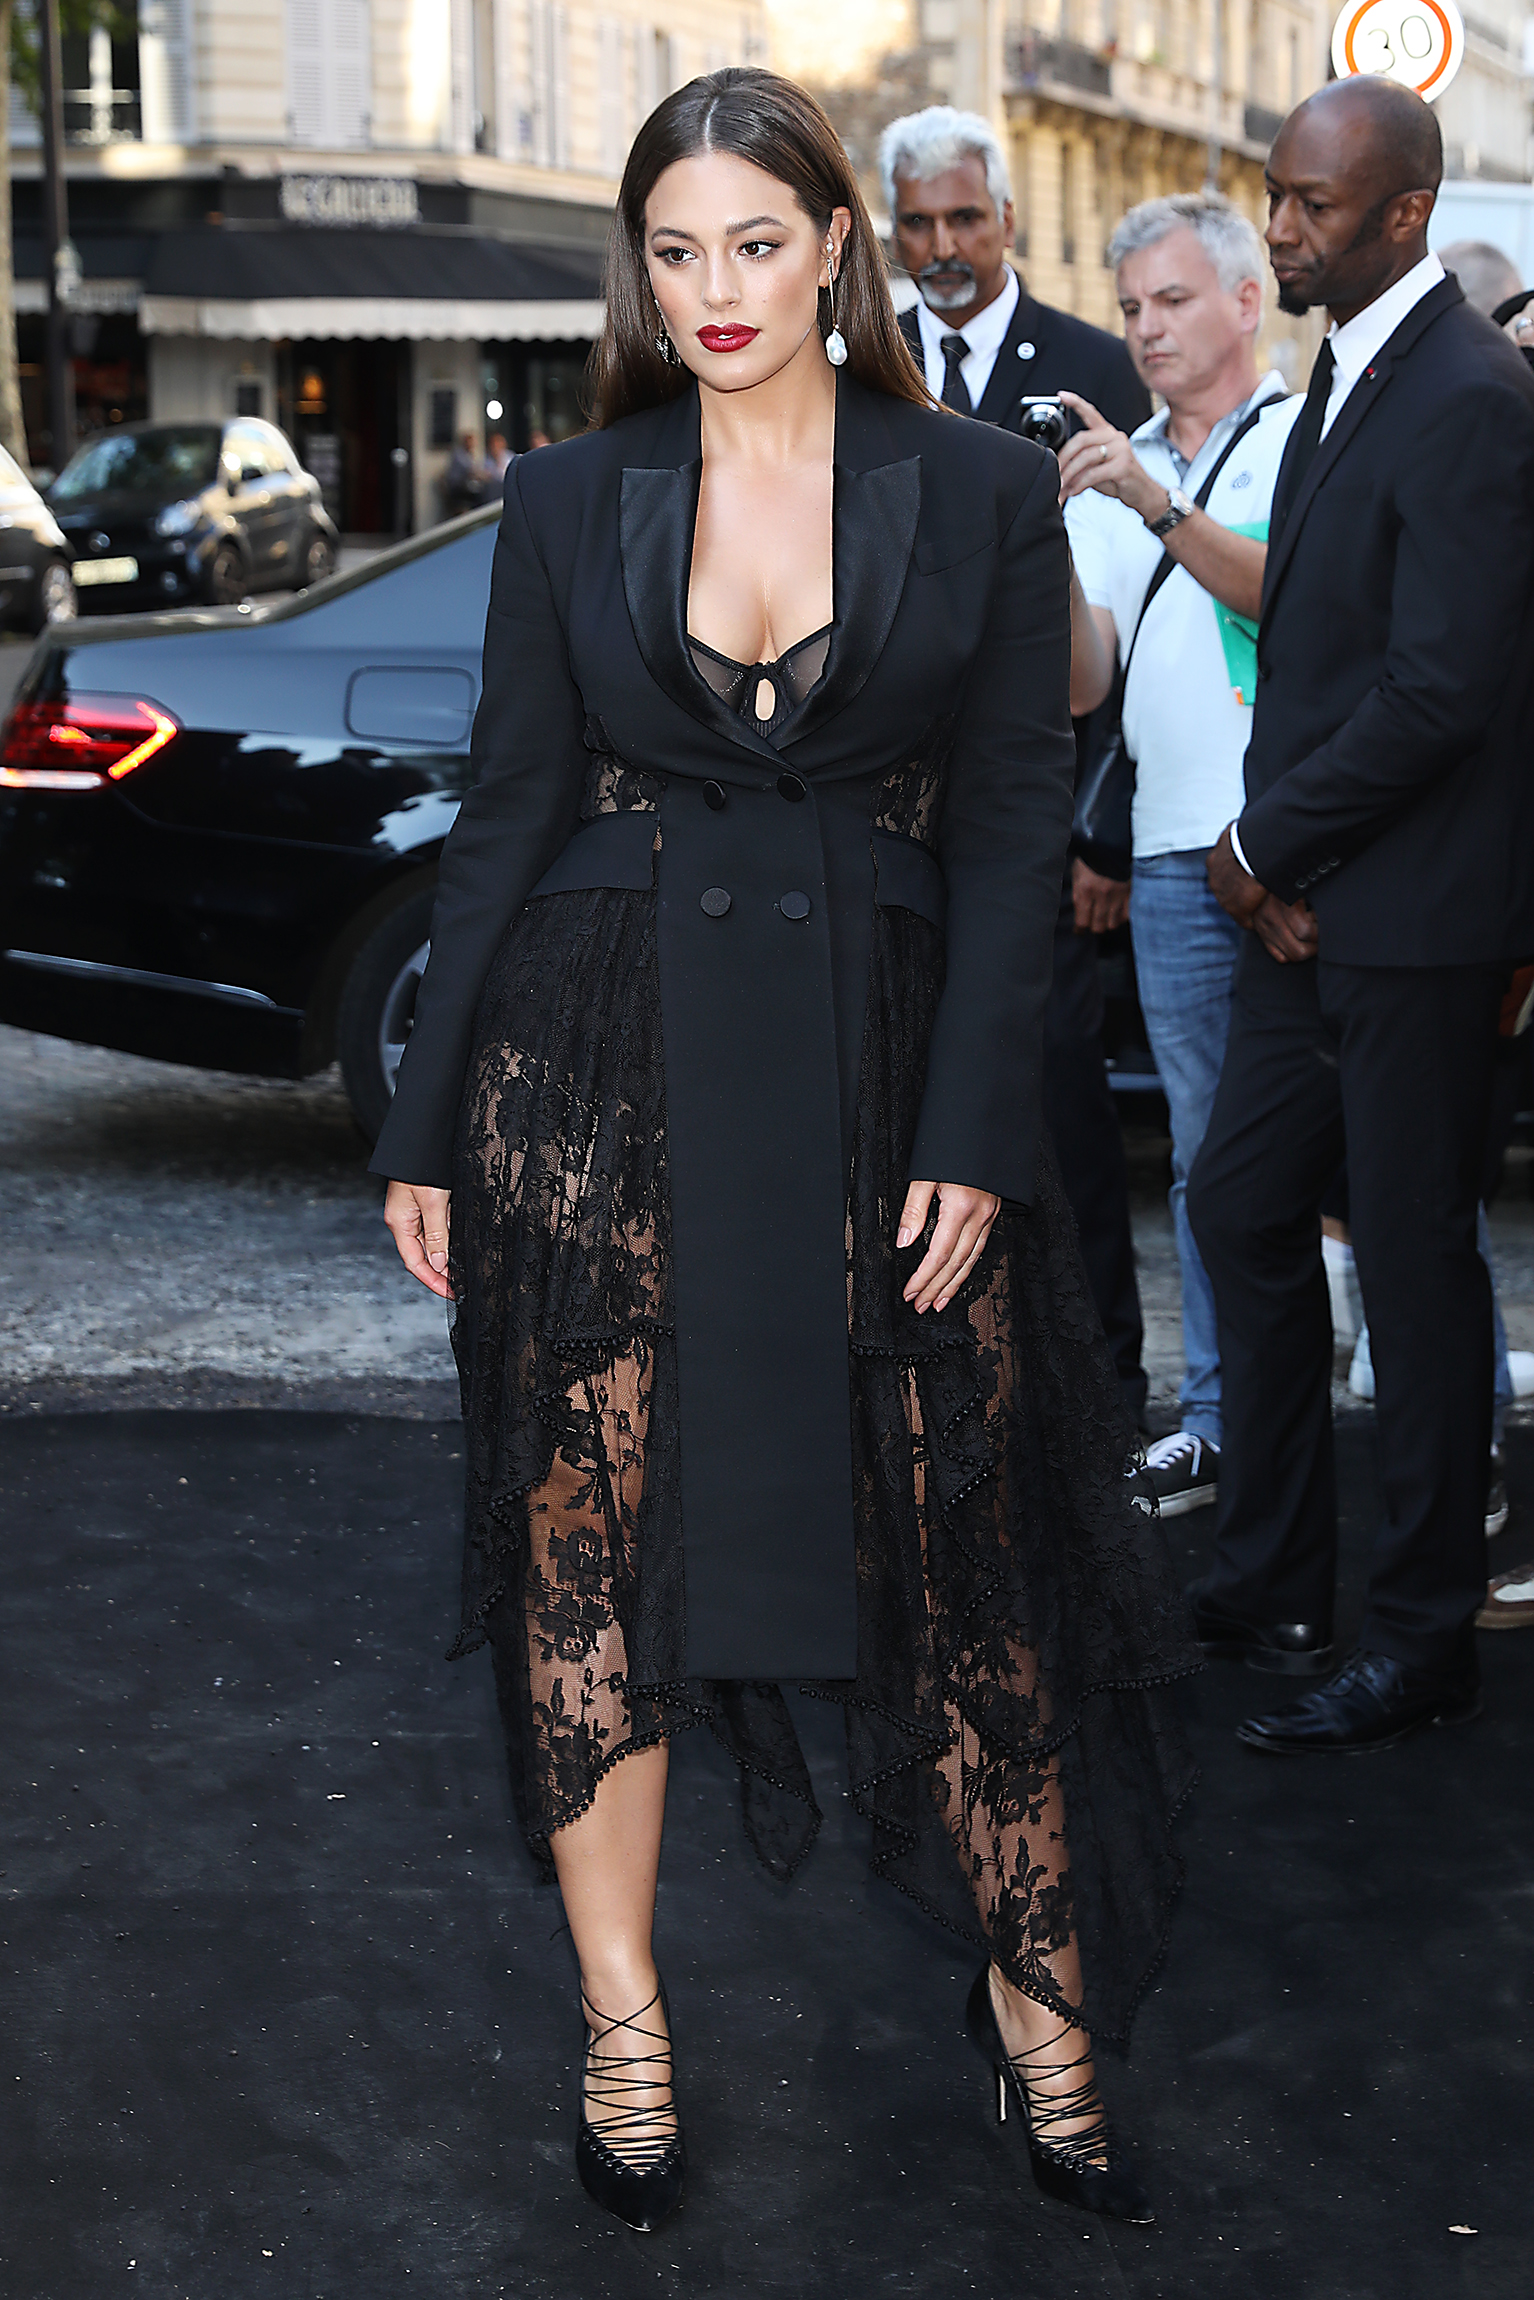 Ashley Graham seen arriving at Vogue Foundation Party during Haute Couture Week Autumn Winter 2018 / 2019 in Paris  Pictured:  Ref: SPL5008000 030718 NON-EXCLUSIVE Picture by: MCFR / SplashNews.com  Splash News and Pictures Los Angeles: 310-821-2666 New York: 212-619-2666 London: 0207 644 7656 Milan: +39 02 4399 8577 Sydney: +61 02 9240 7700 photodesk@splashnews.com  World Rights